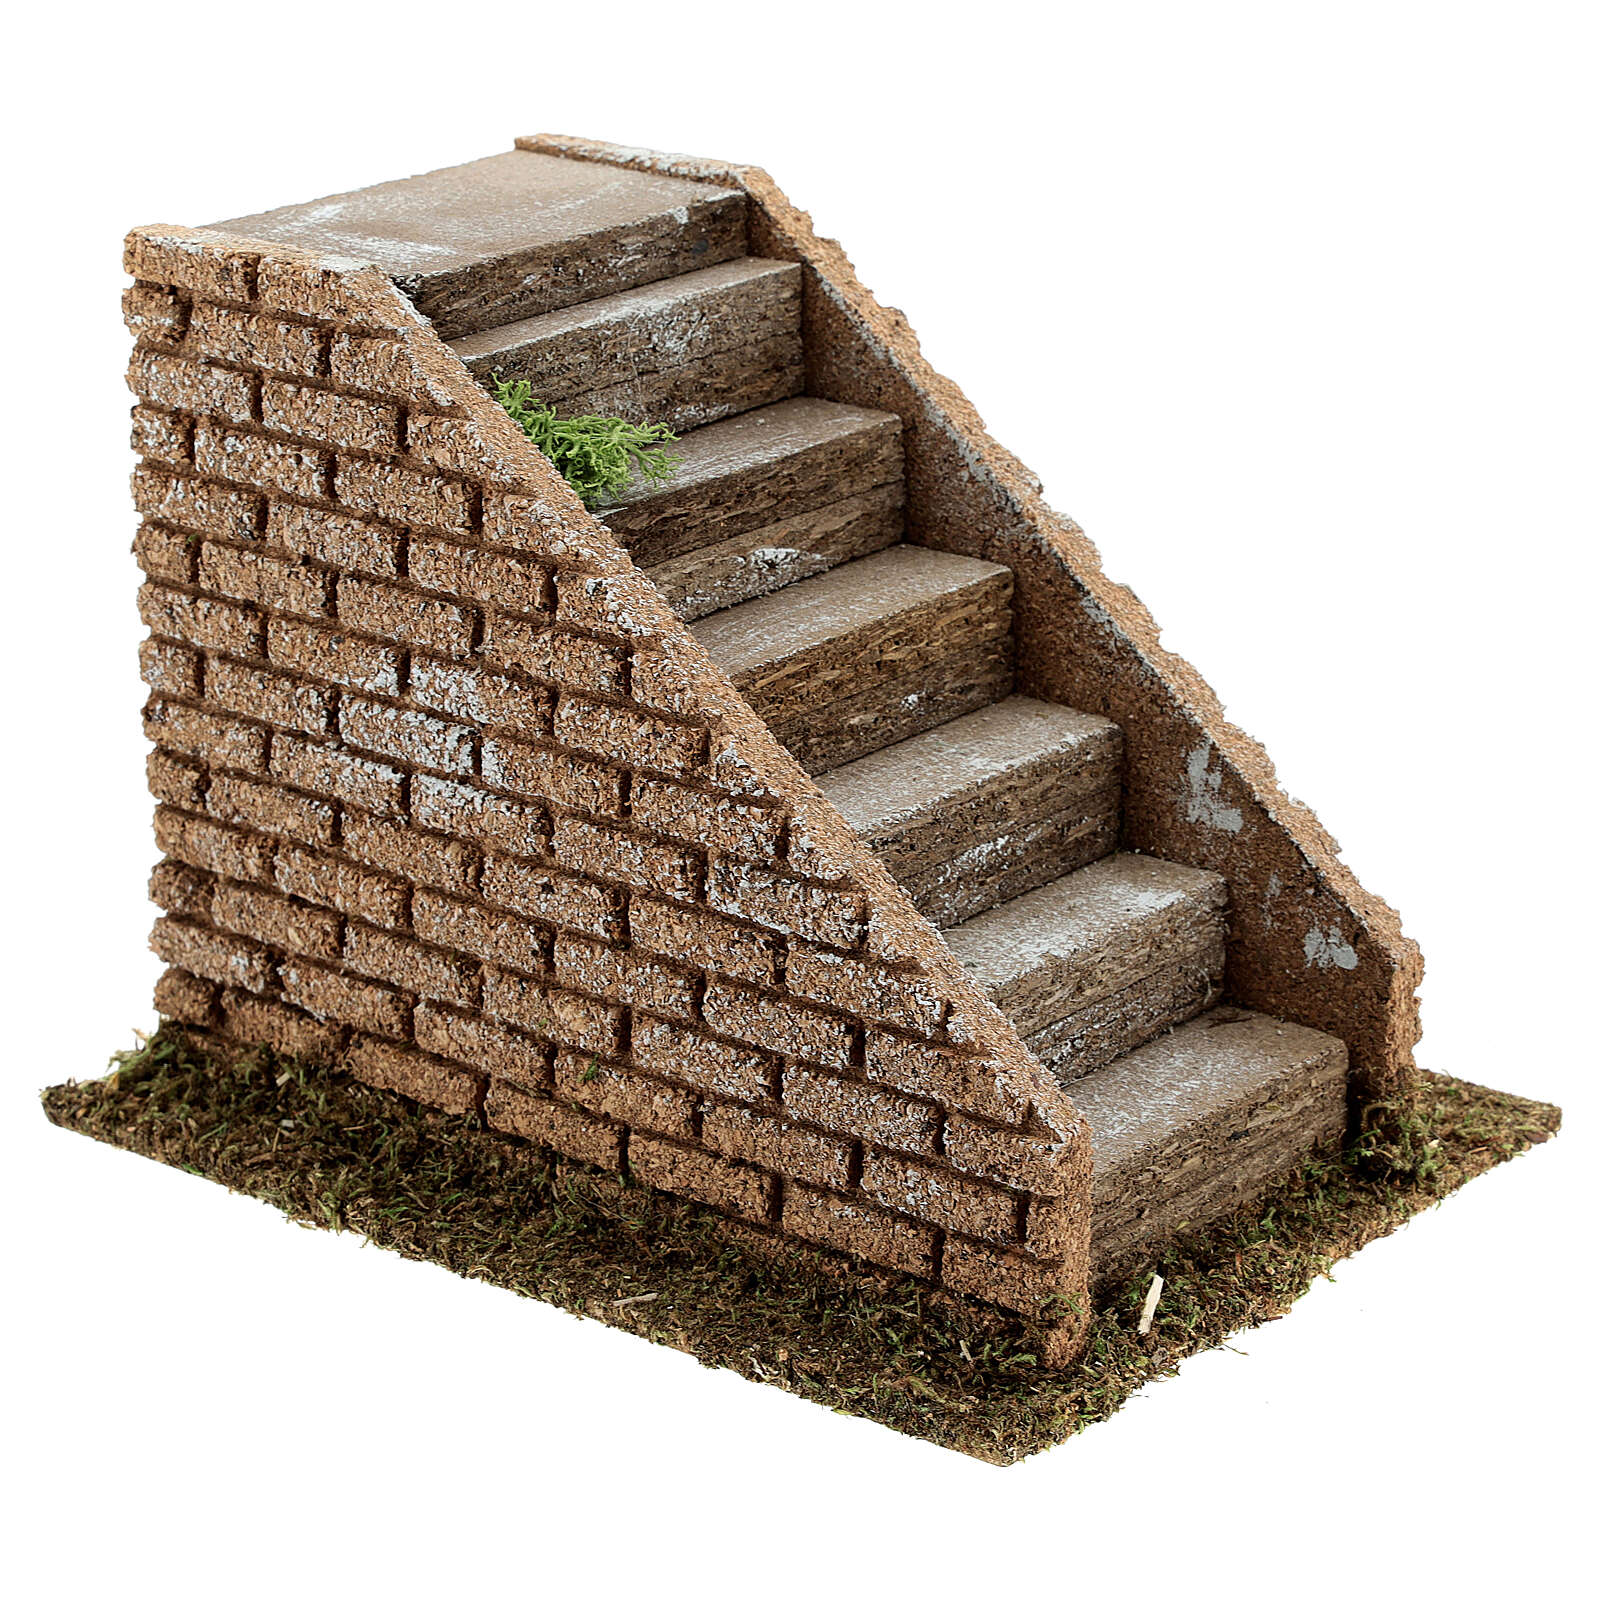 Stairs with masonry steps for Nativity scenes with 8-12 cm figurines 15x20x15 cm 4